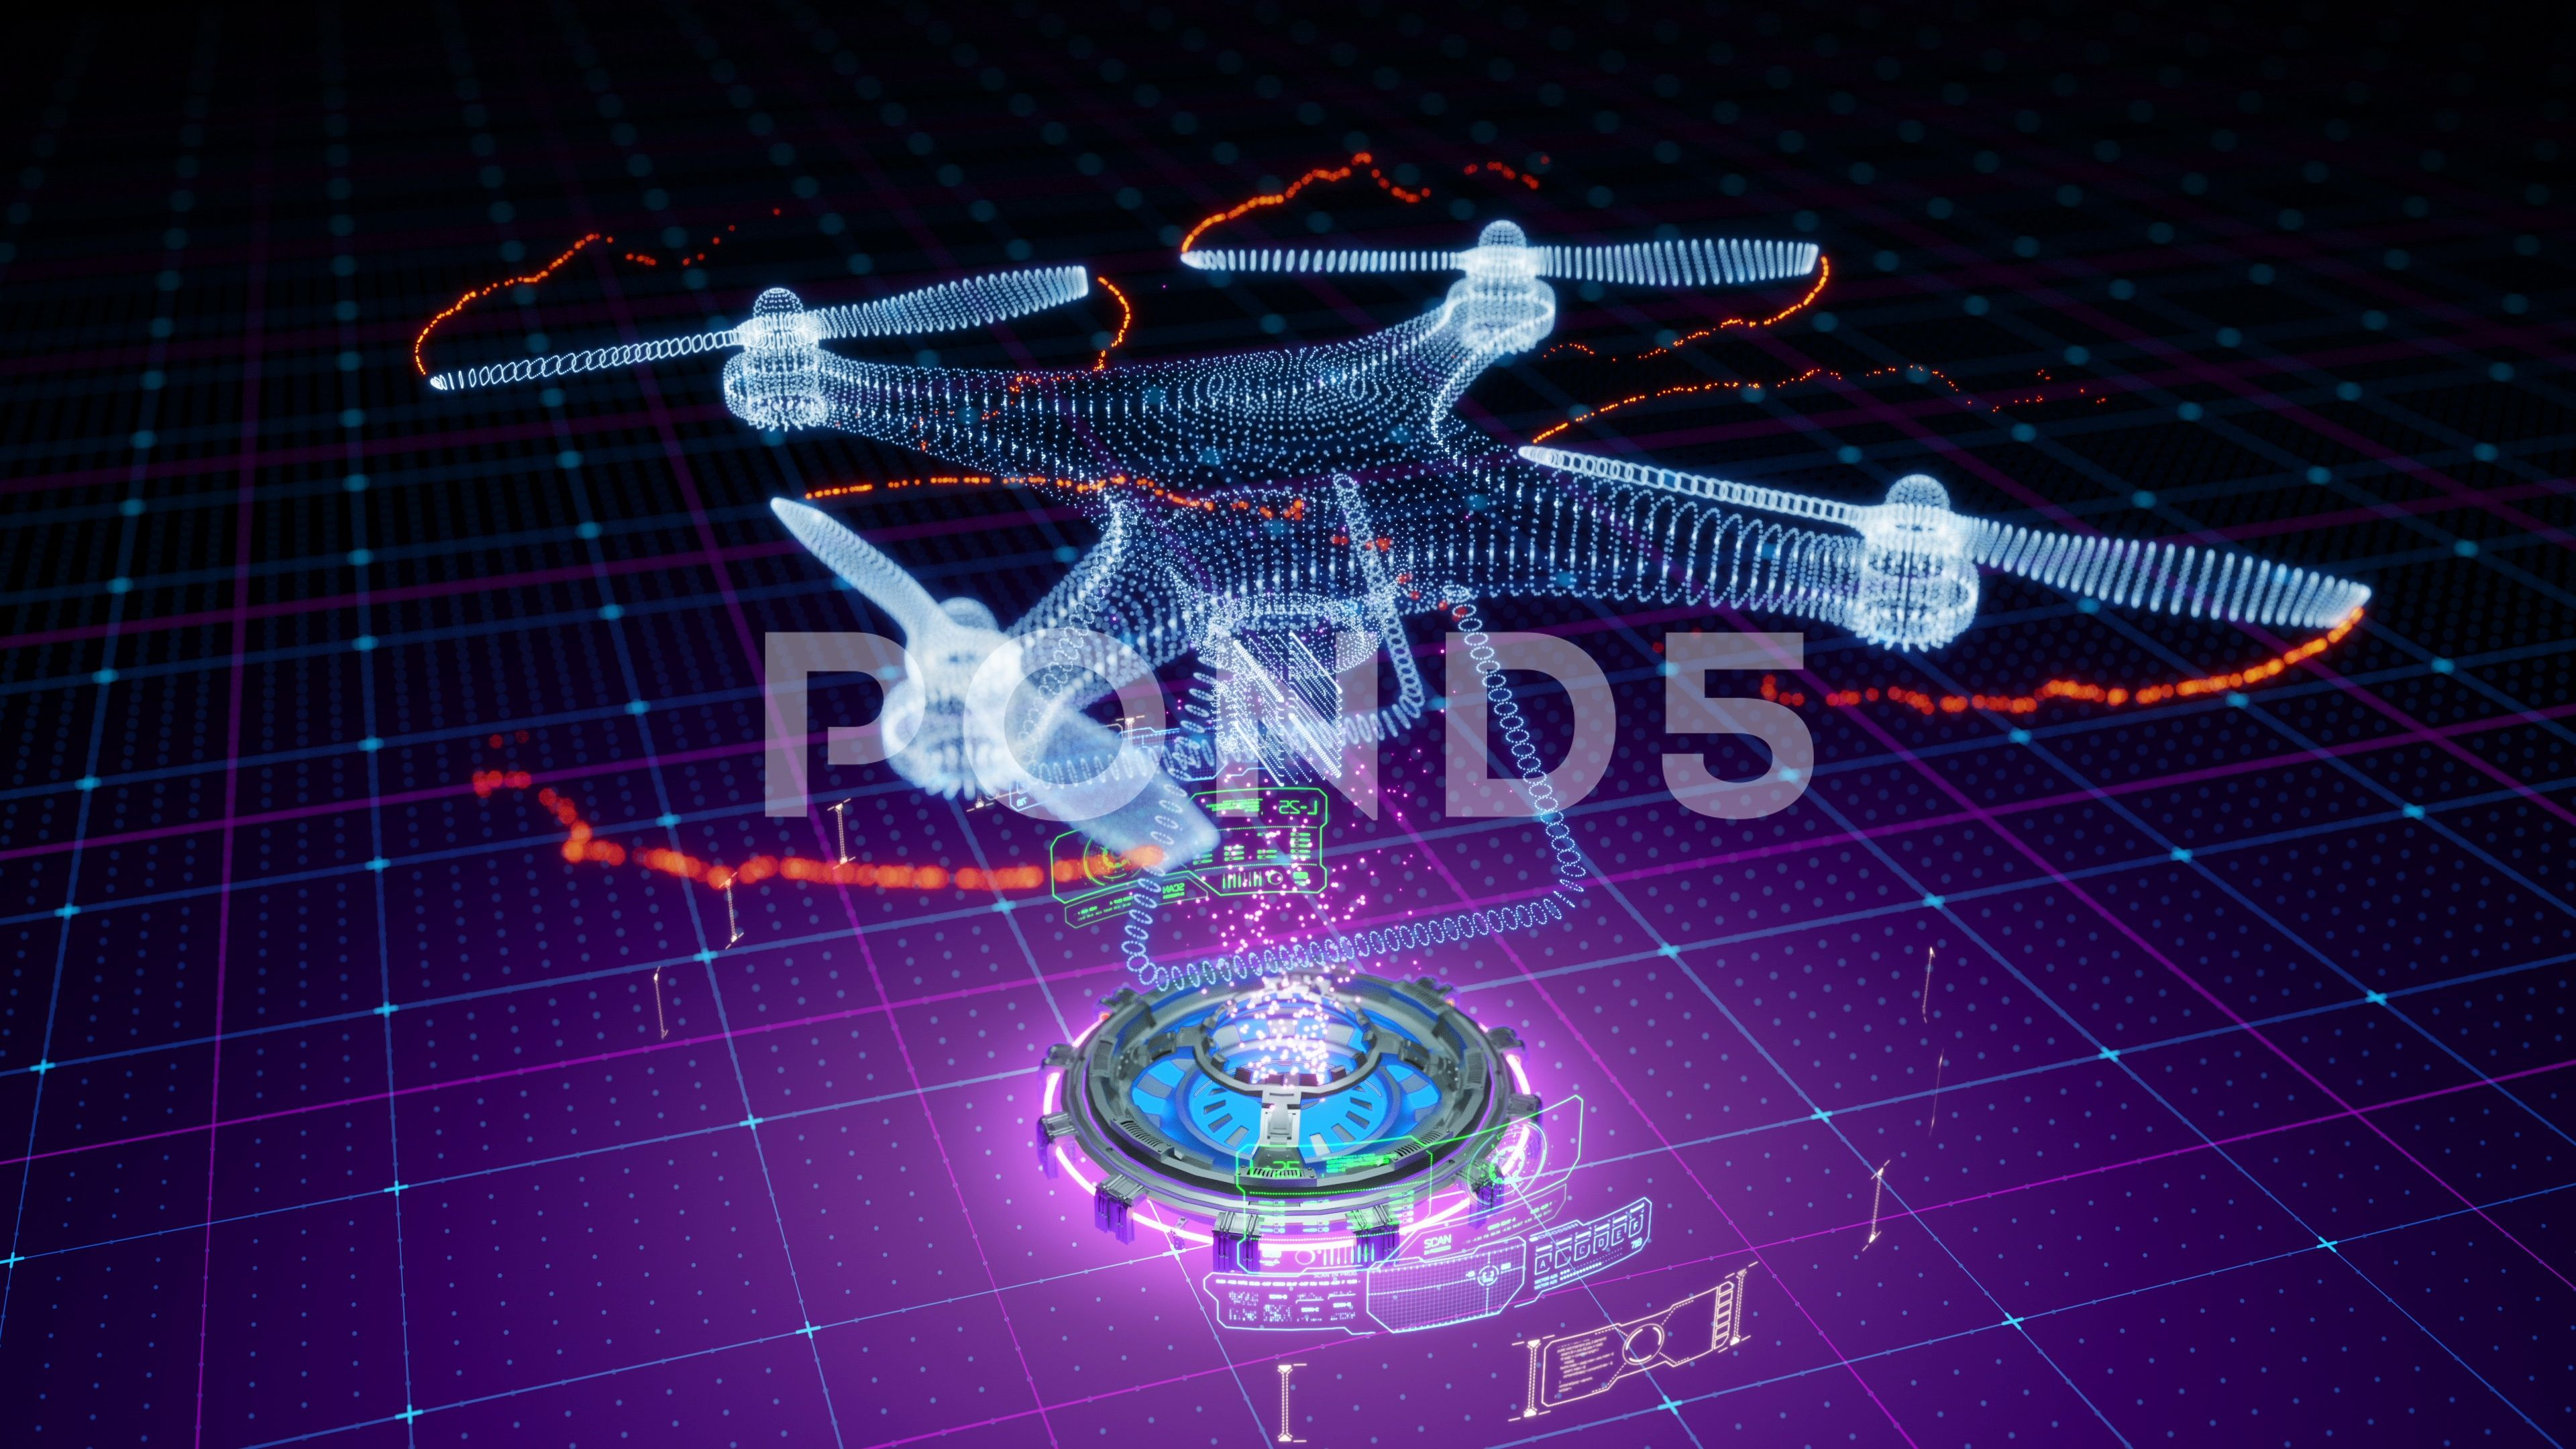 Abstract animation of quad copter drone formed by